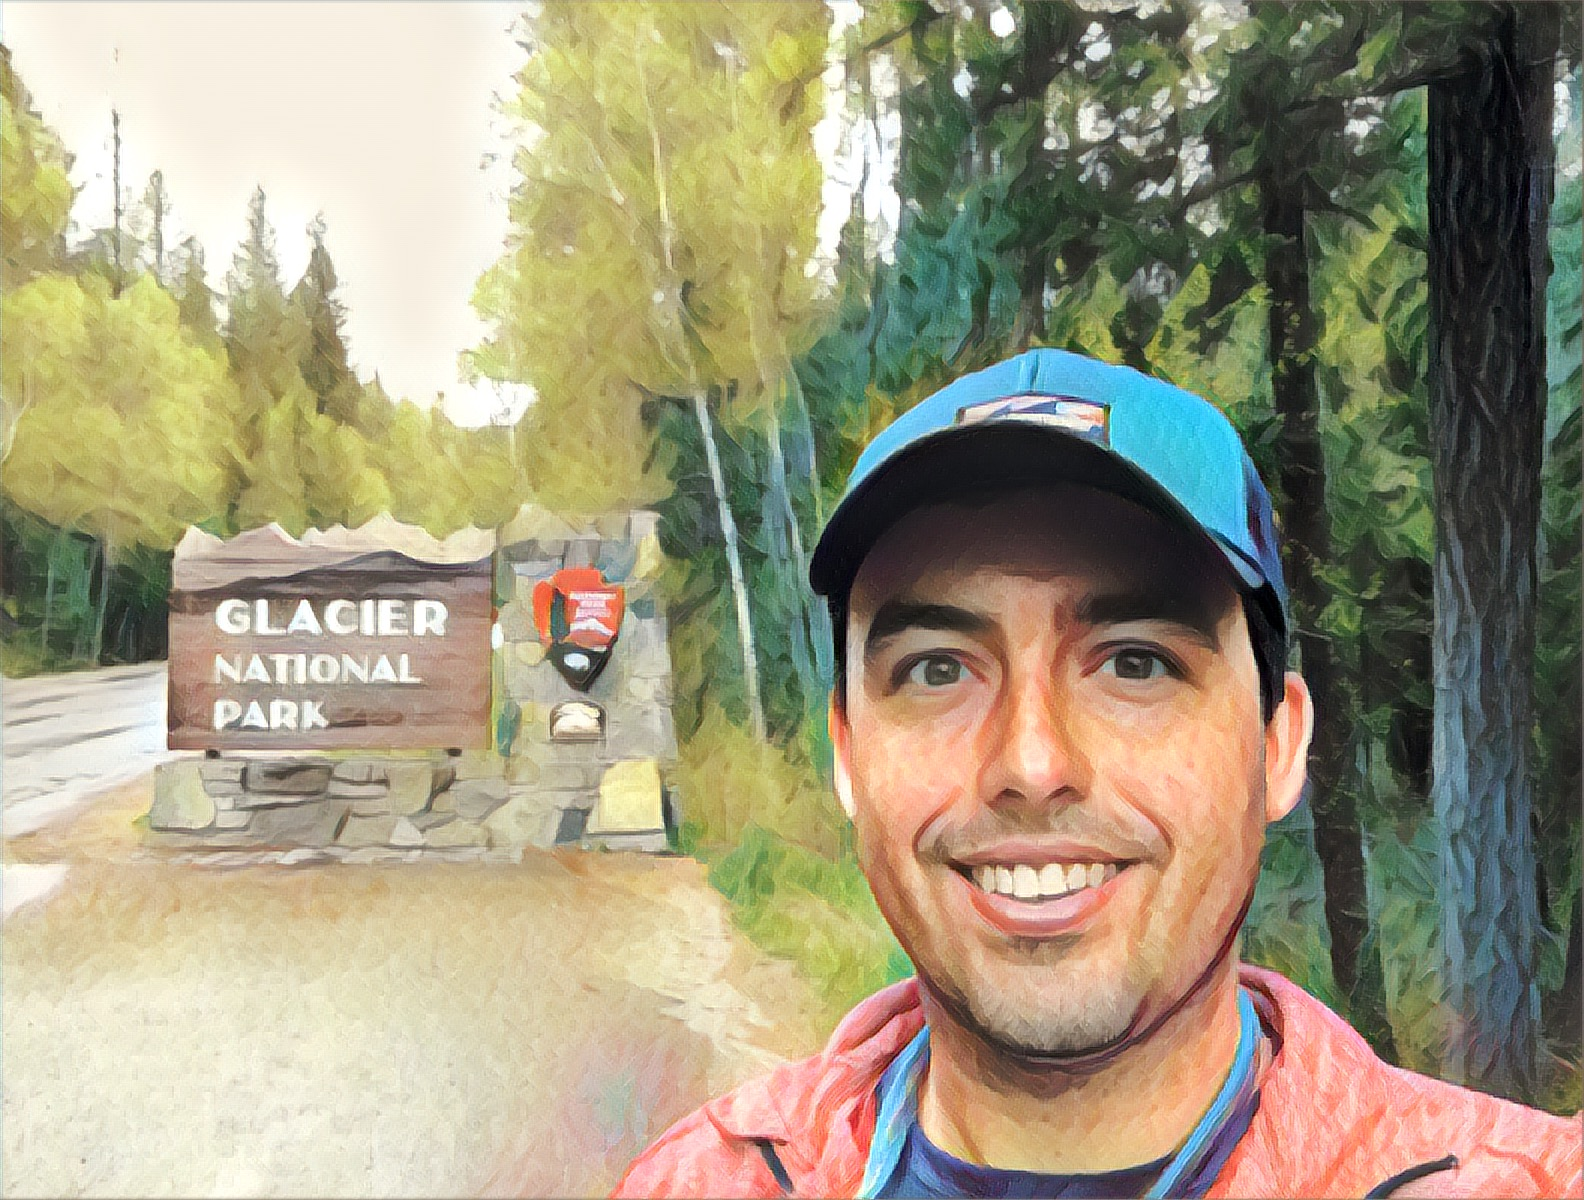 I went camping in Glacier National Park May 2017, right after the news that Harken was shutting down and I began exploring what's next for me in life.